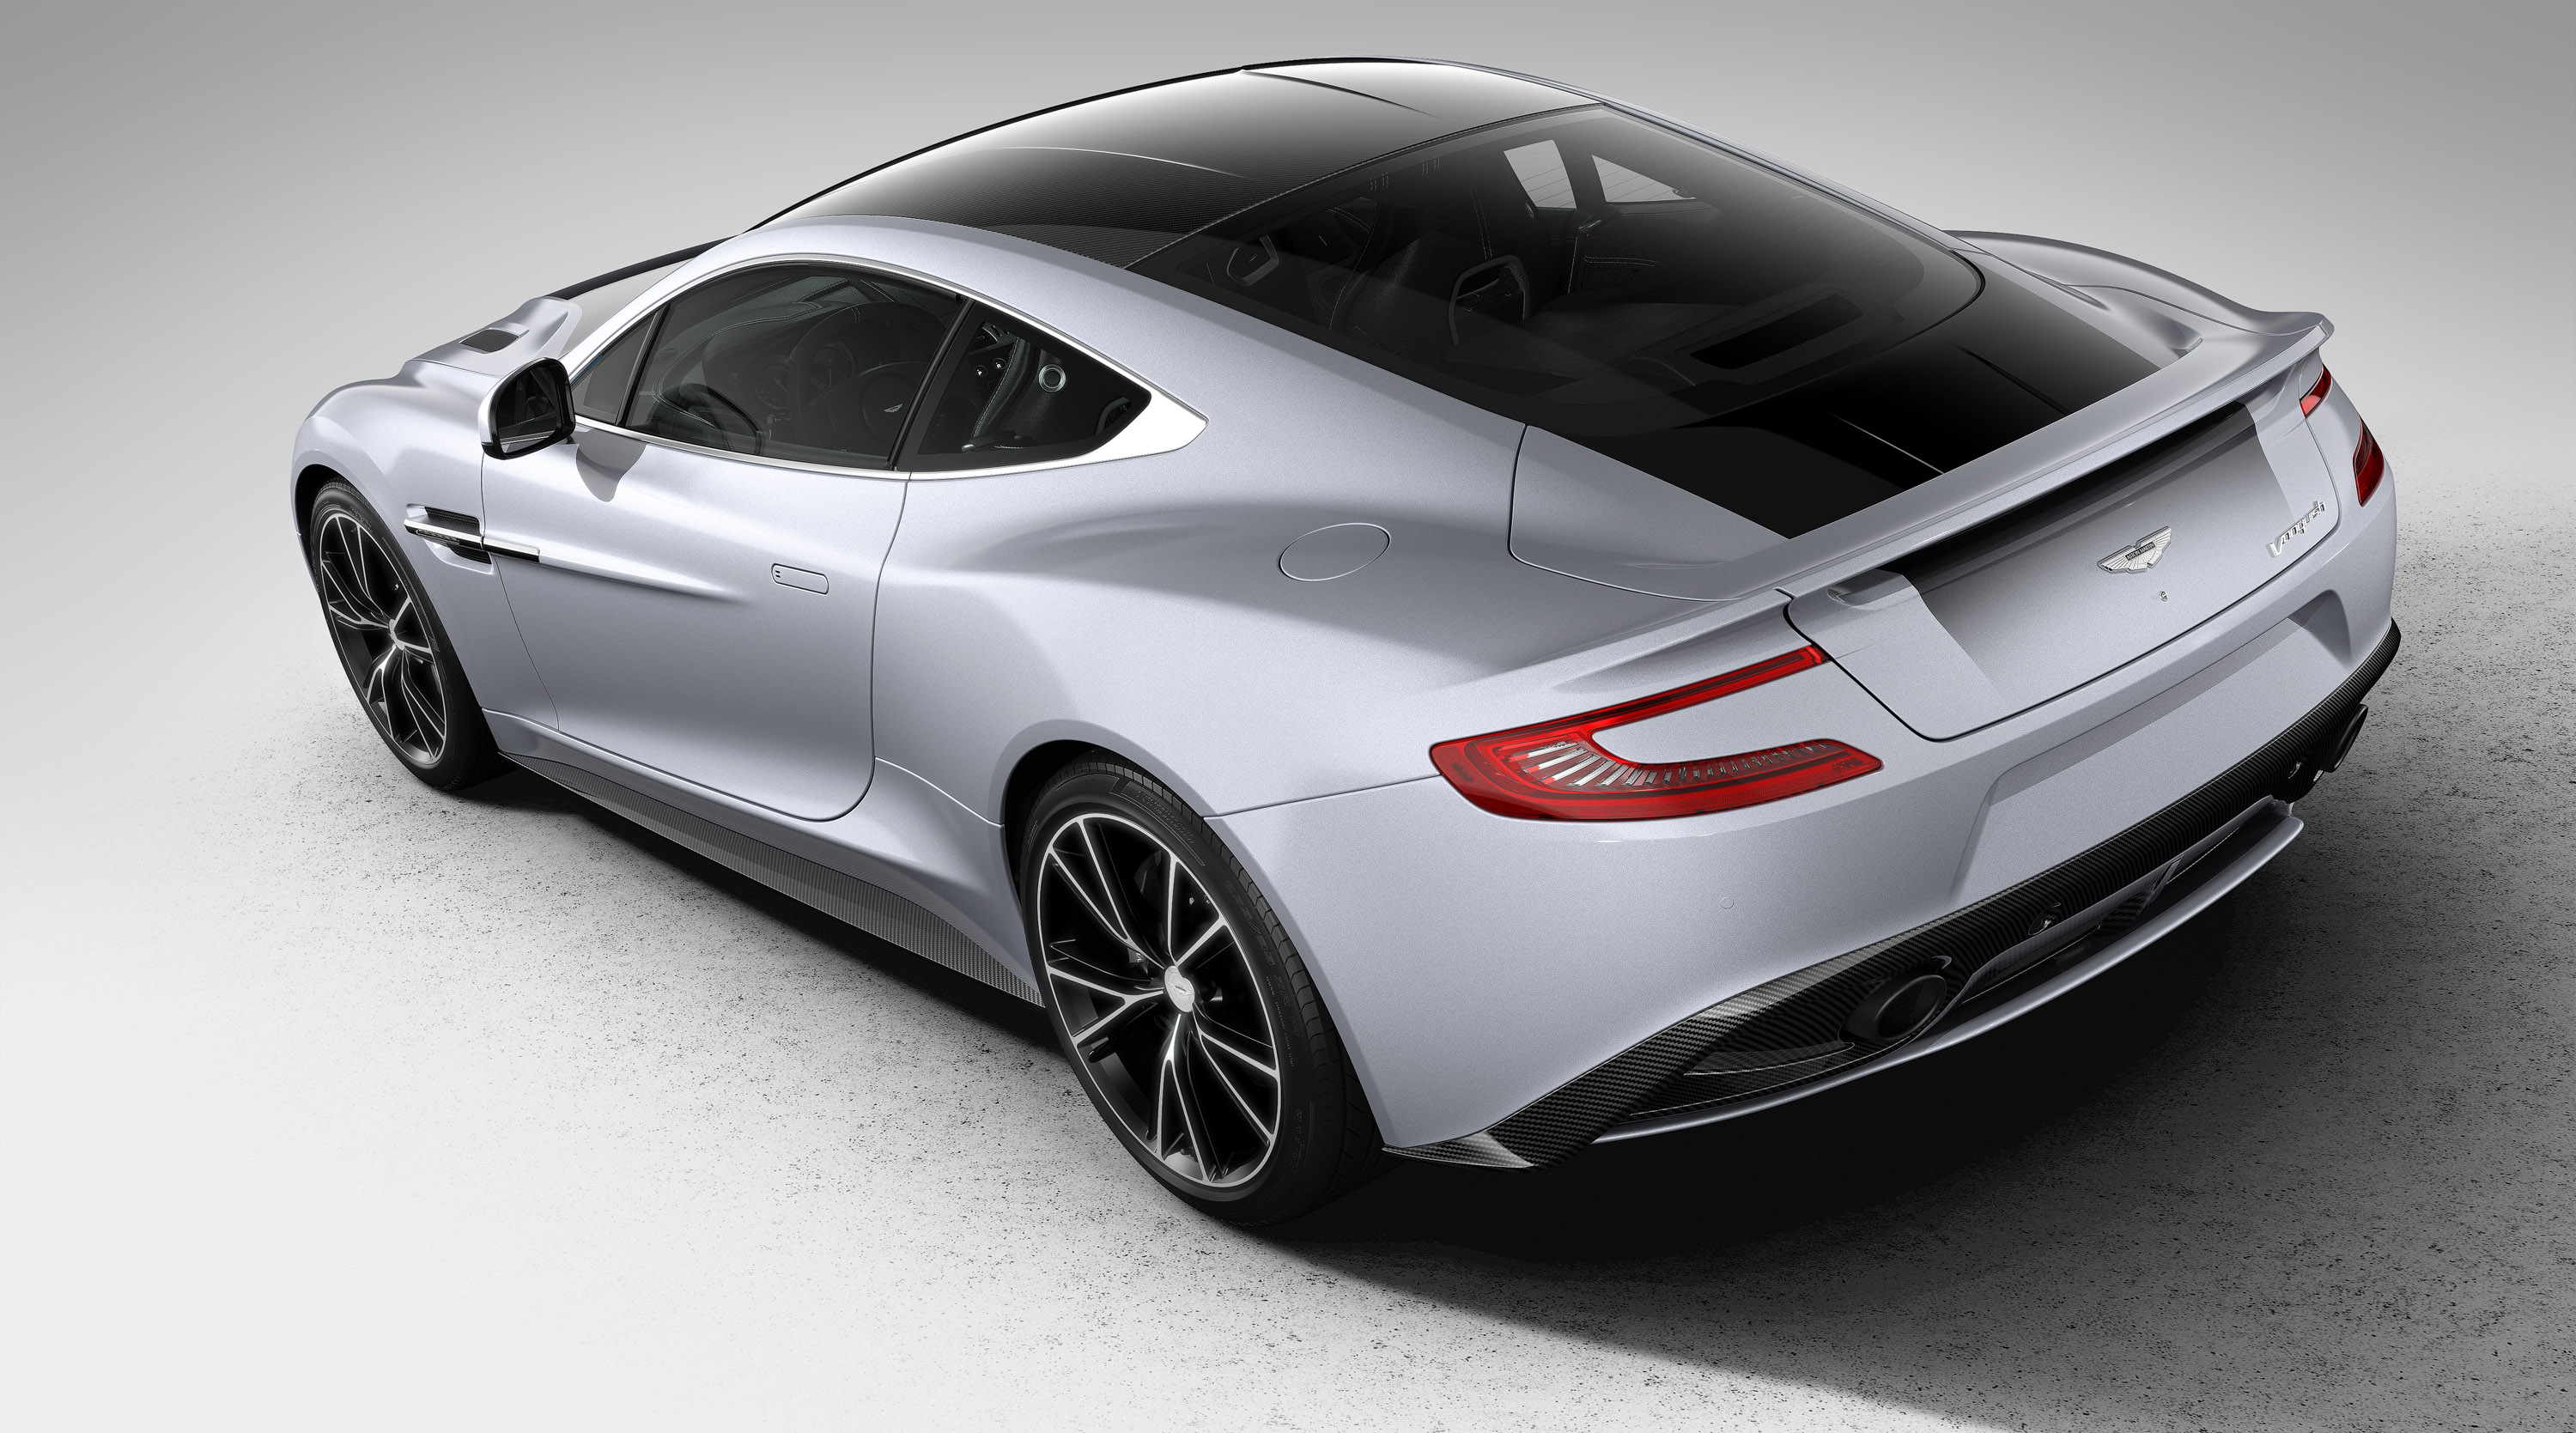 Aston Martin Vanquish Centenary Edition Reaches New Heights [VIDEO]